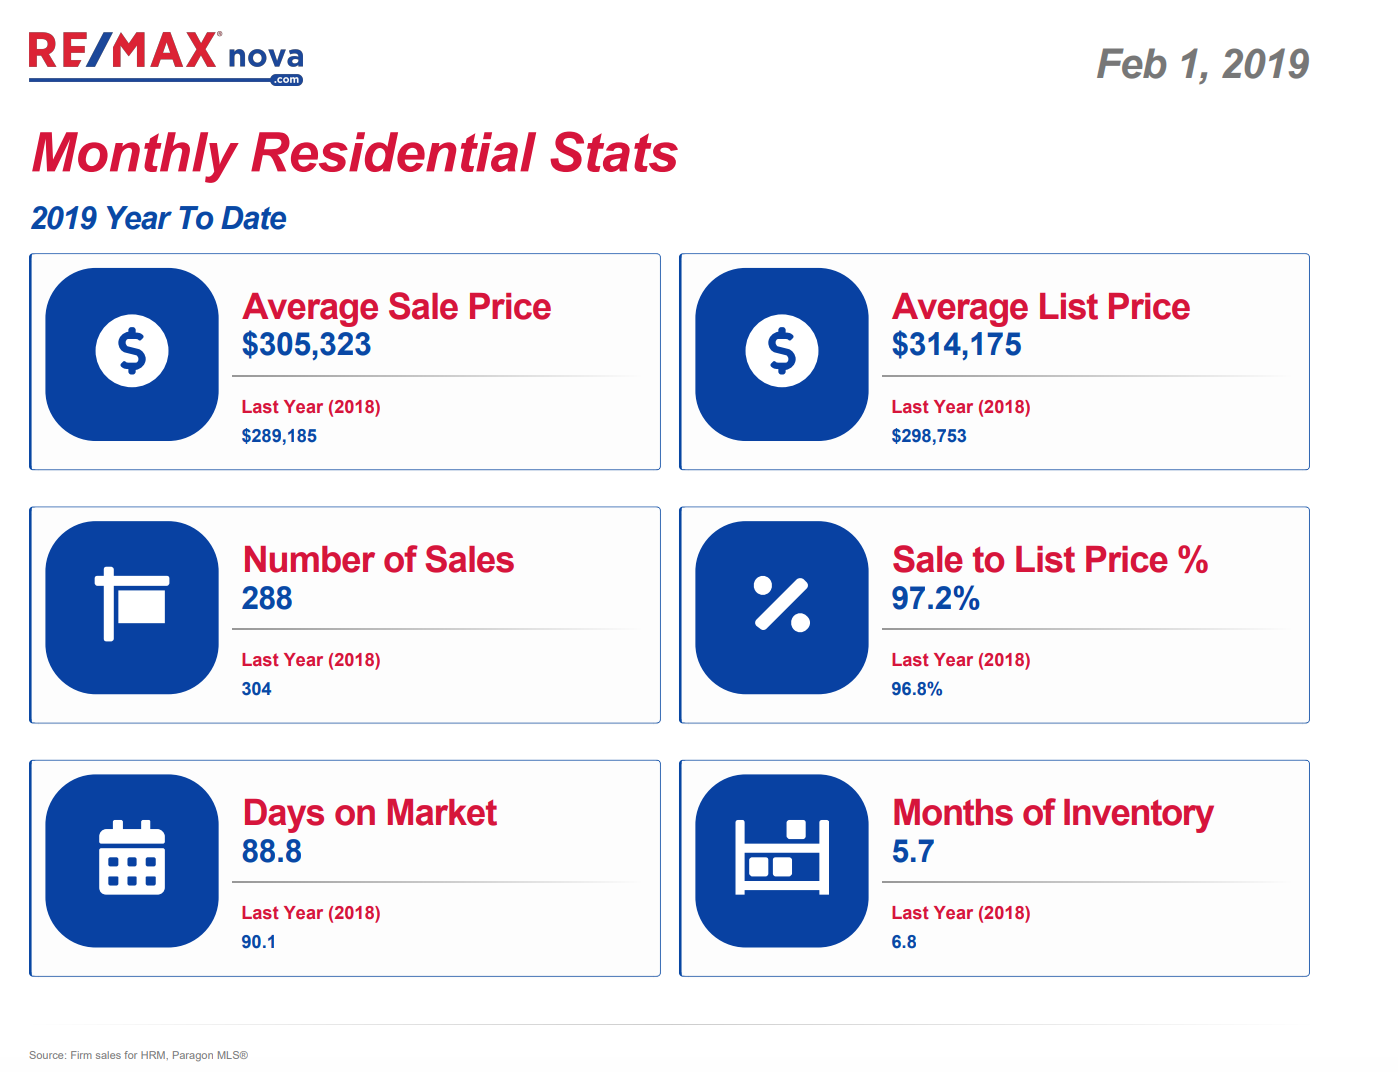 Halifax monthly residential sales activity February 2019 | RE/MAX NOVA®